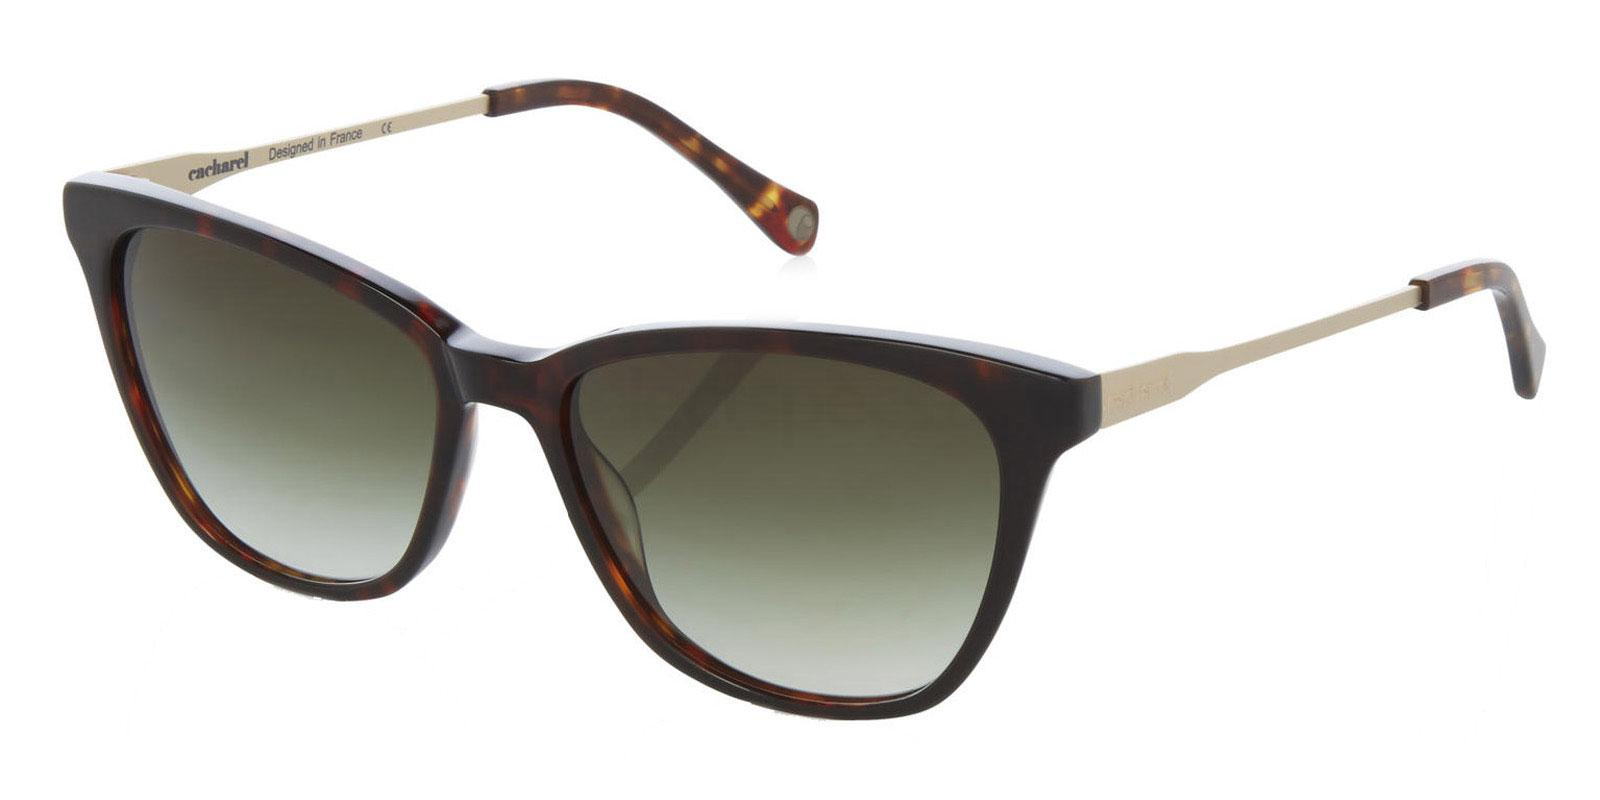 135 CA7039 Sunglasses, Cacharel